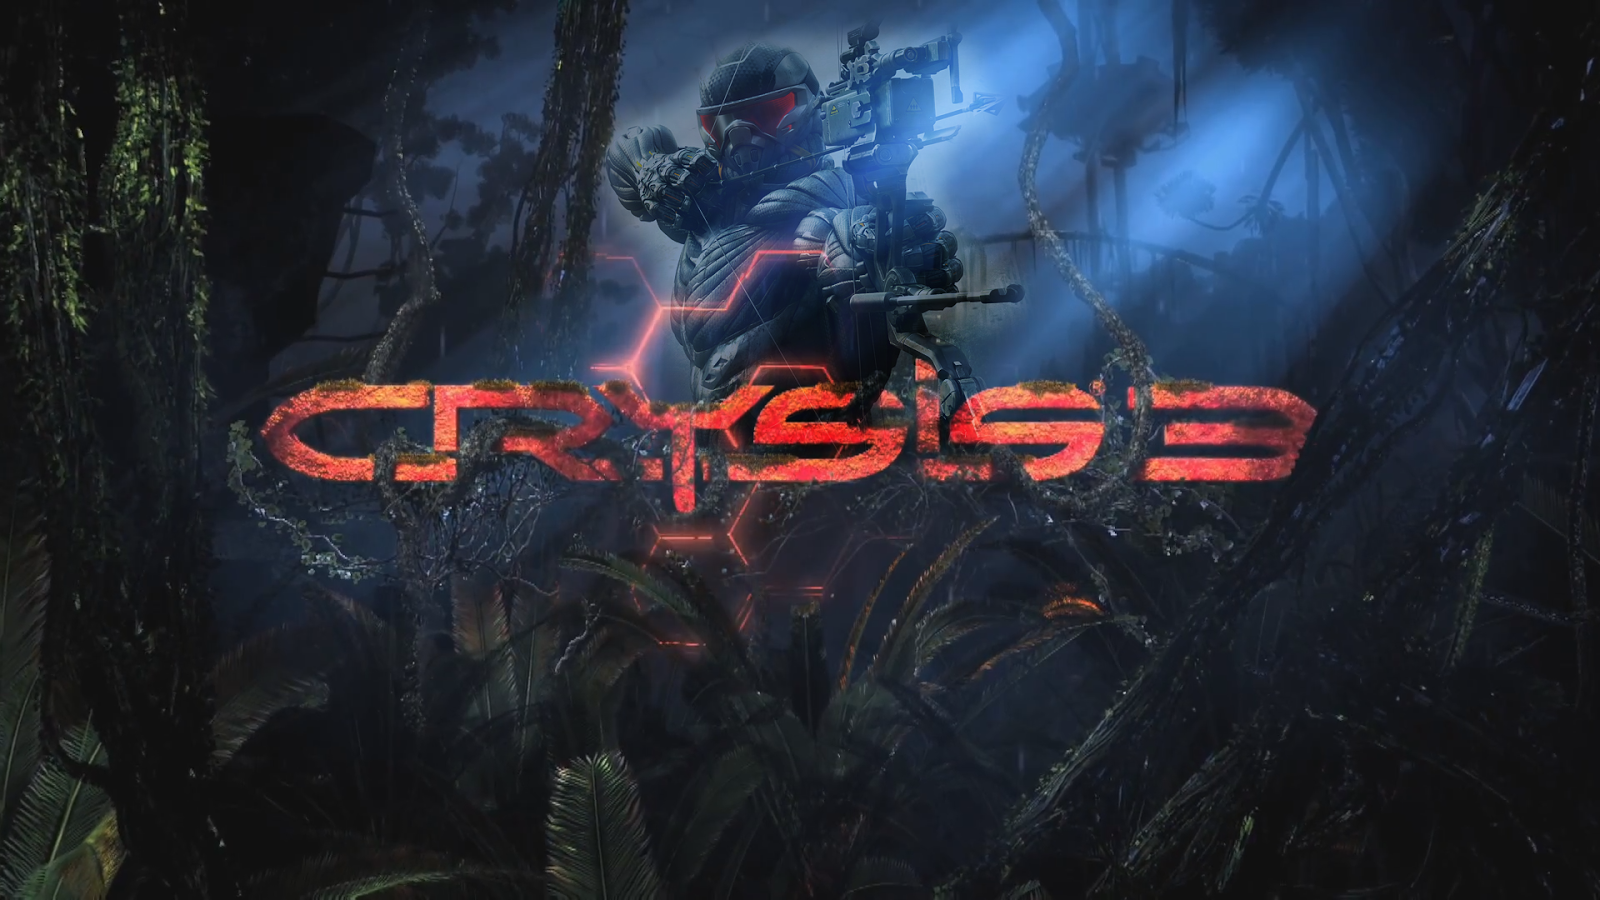 http://1.bp.blogspot.com/-PY_4ykqMg2Q/UUwGleEMVaI/AAAAAAAABas/O6FRBssyJ6A/s1600/crysis-3-wallpaper-prophet-with-bow-and-crysis-logo-yuiphone-1920x1080.png